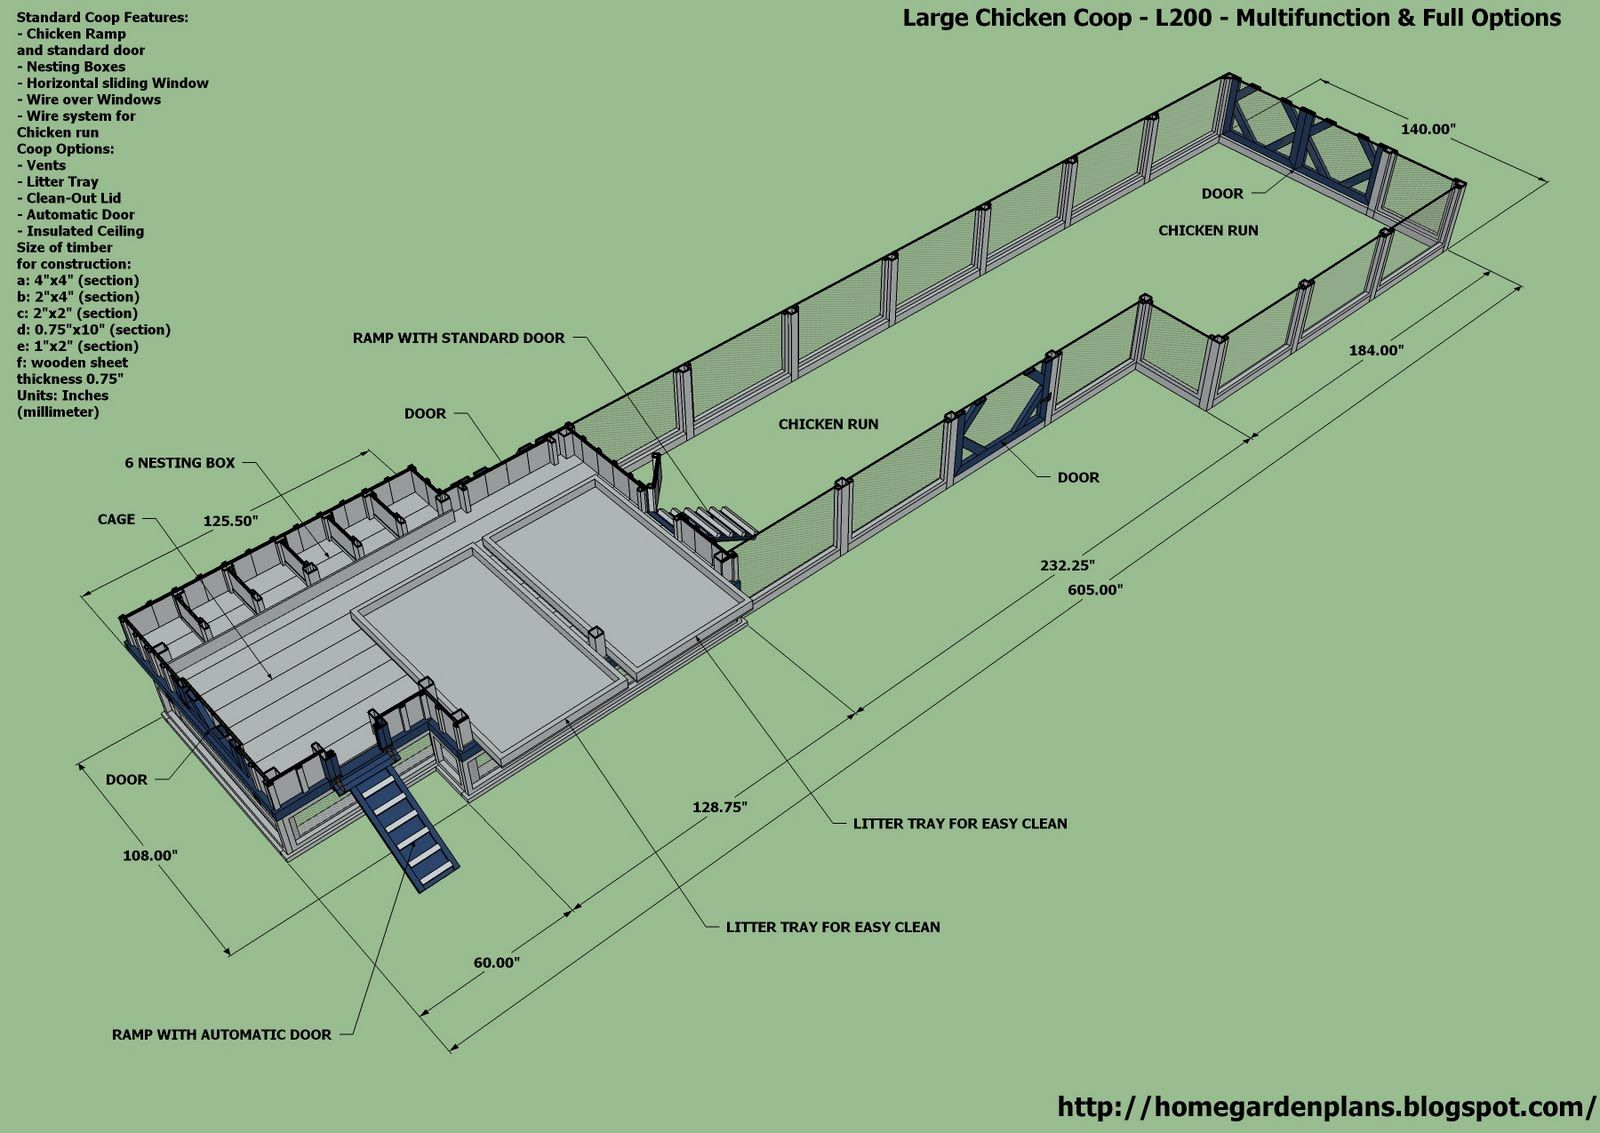 Home Garden Plans L200 Large Chicken Coop Plans How To Build A Chicken Coop Multifunction Large Chicken Coop Plans Chicken Coop Building A Chicken Coop Backyard free range chicken house design